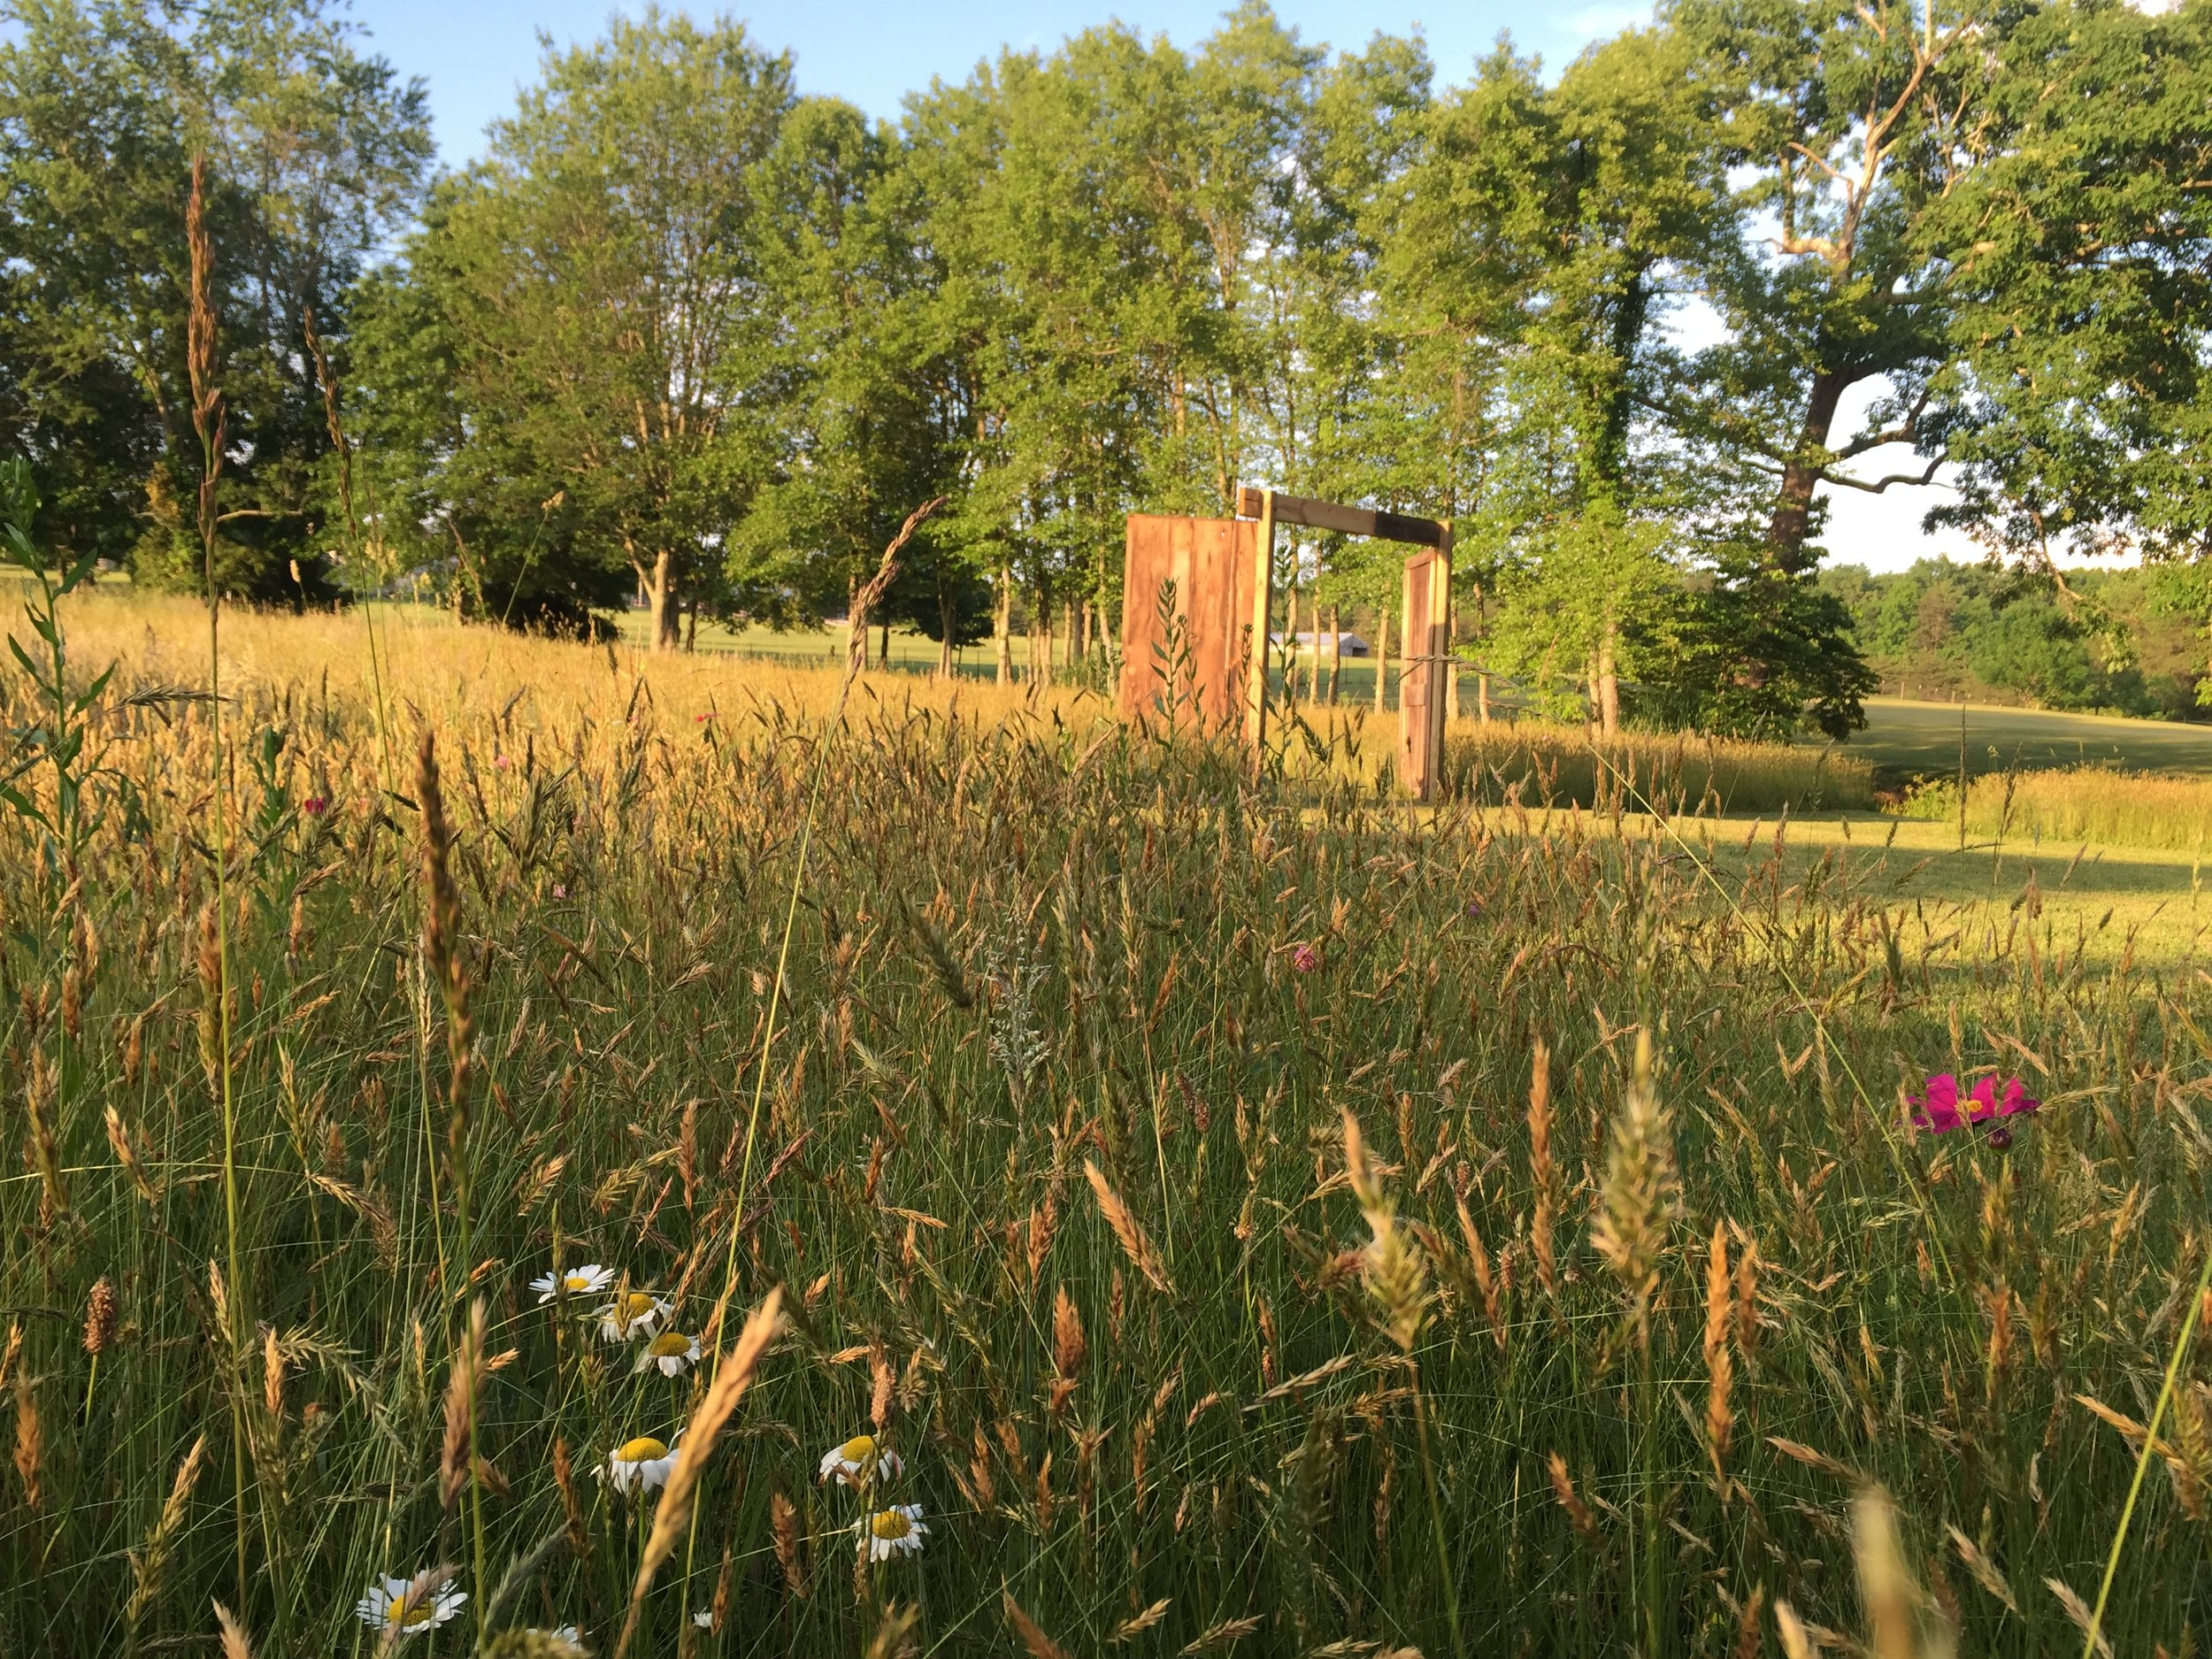 Field with wild flowers ready for a wedding